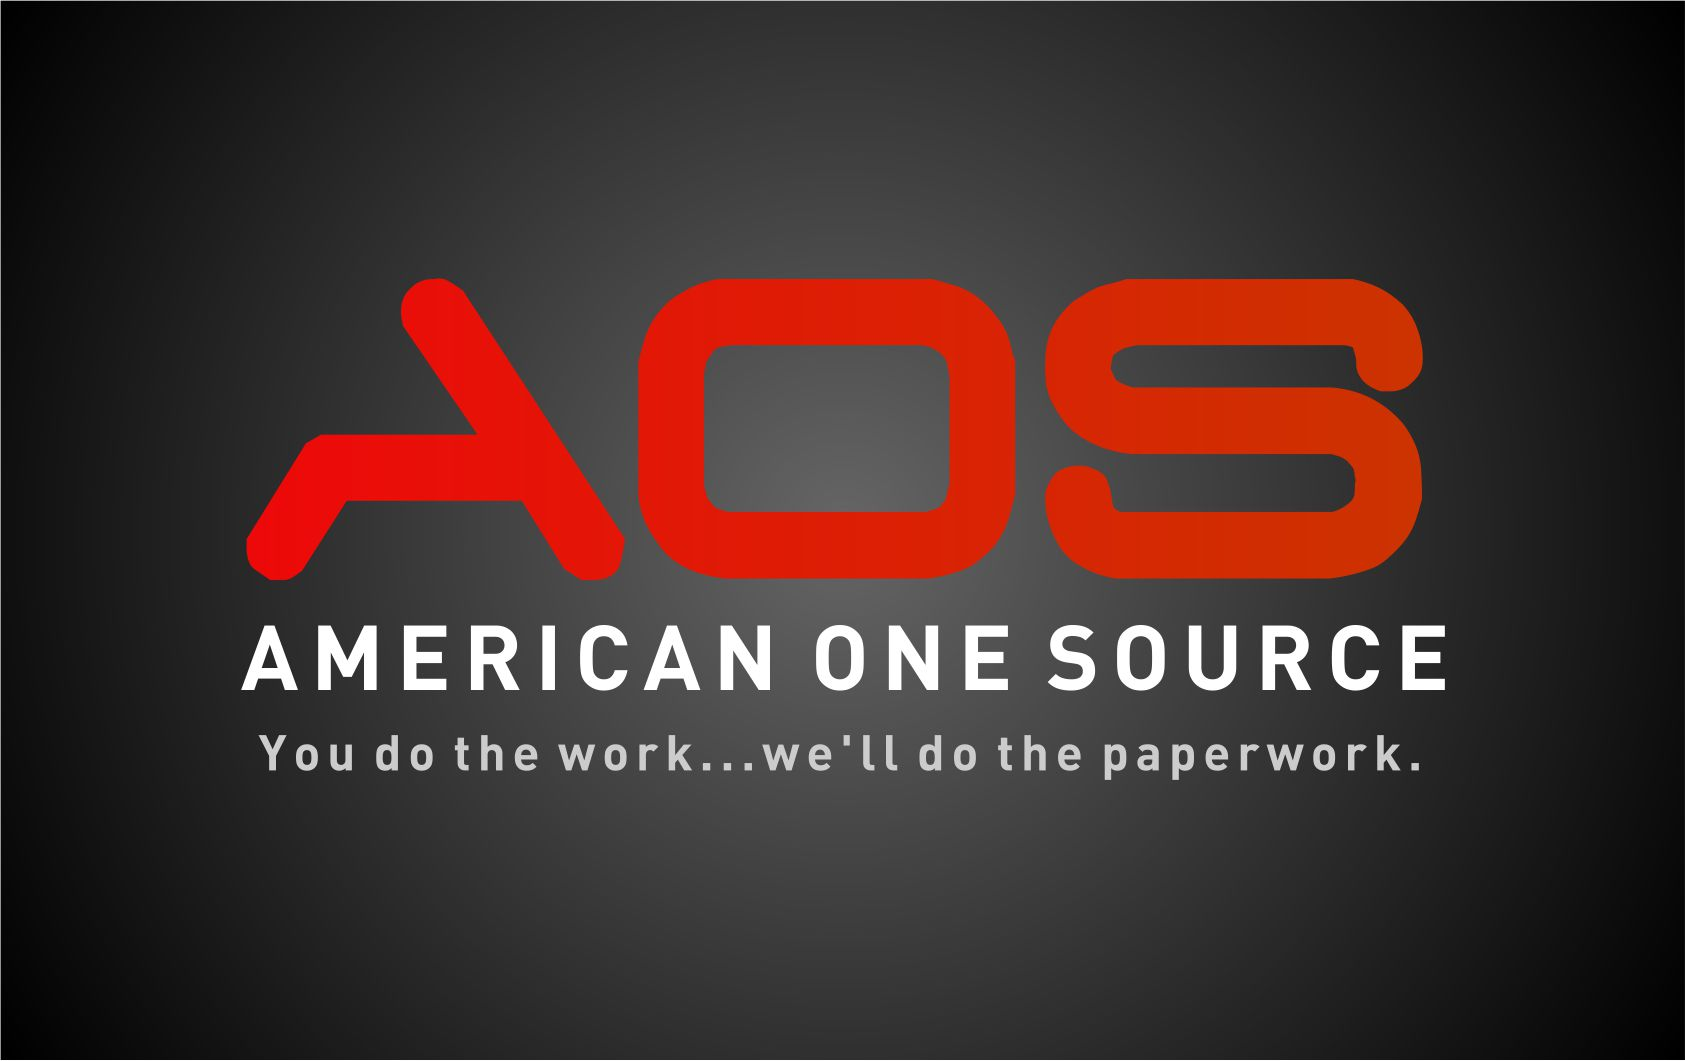 AOS American One Source logo 02